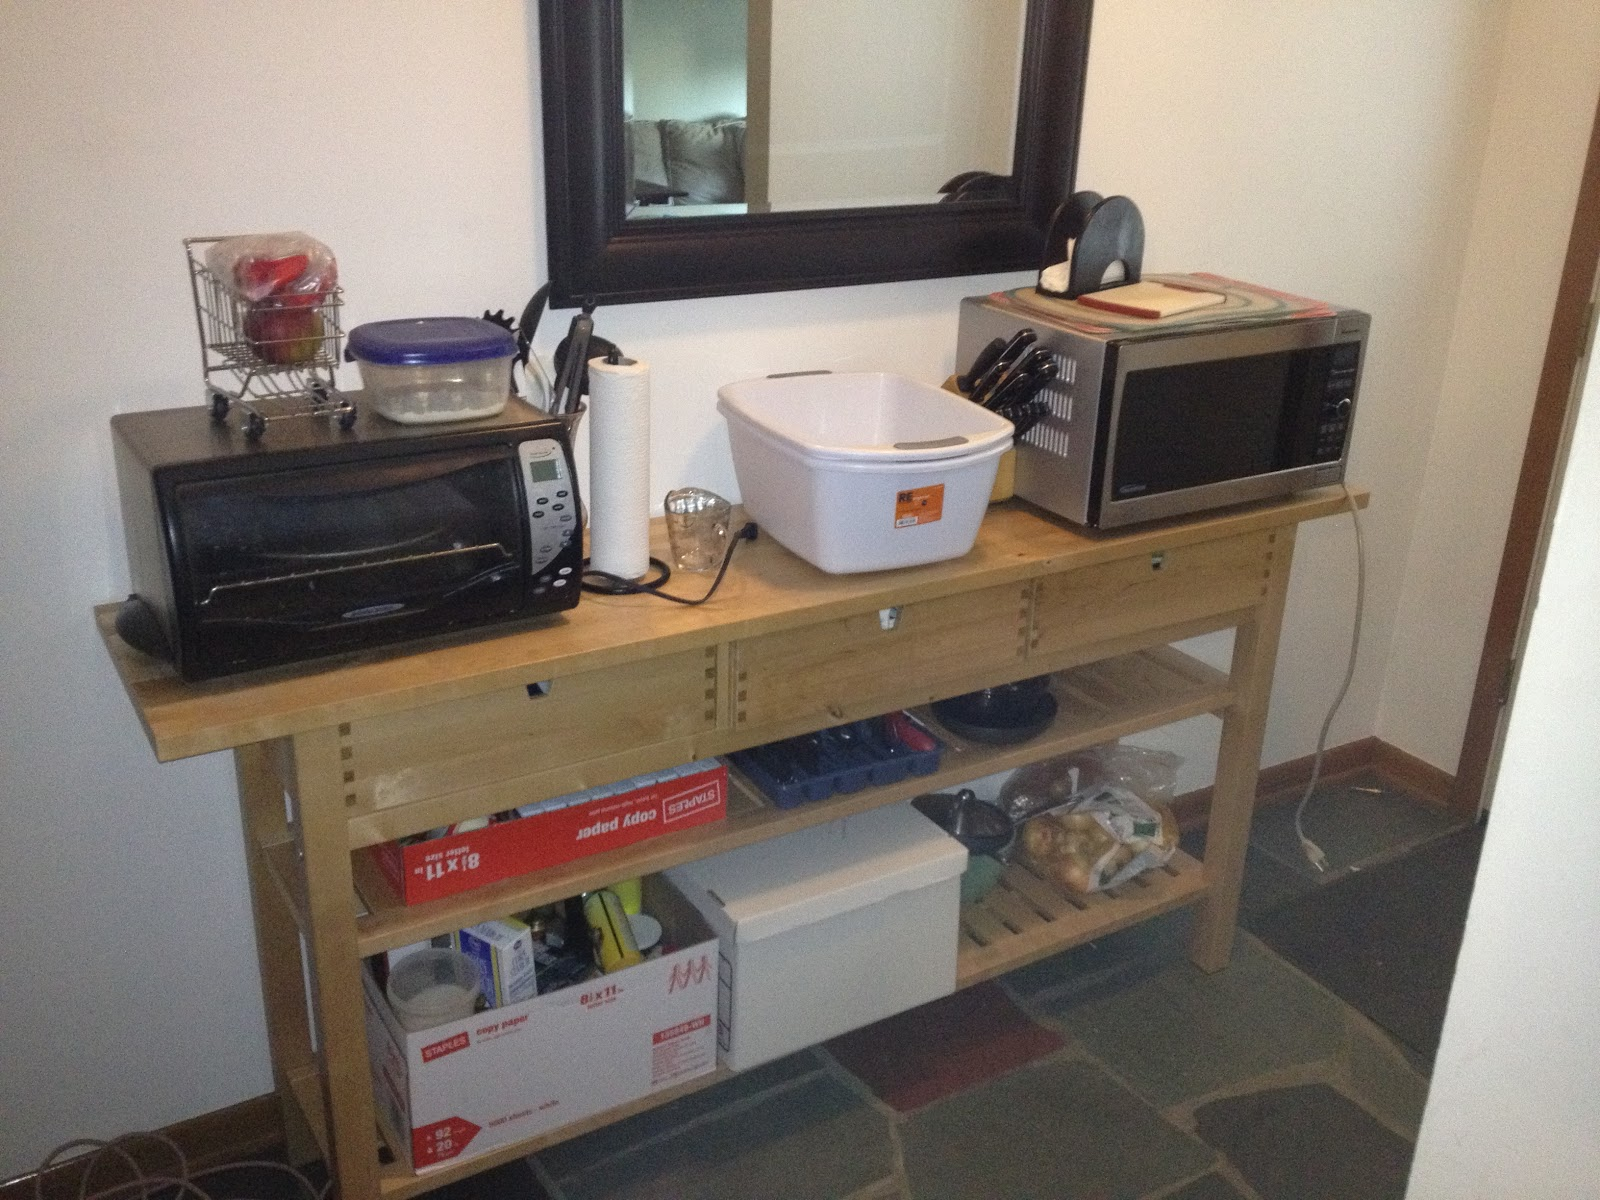 Our Temporary Kitchen